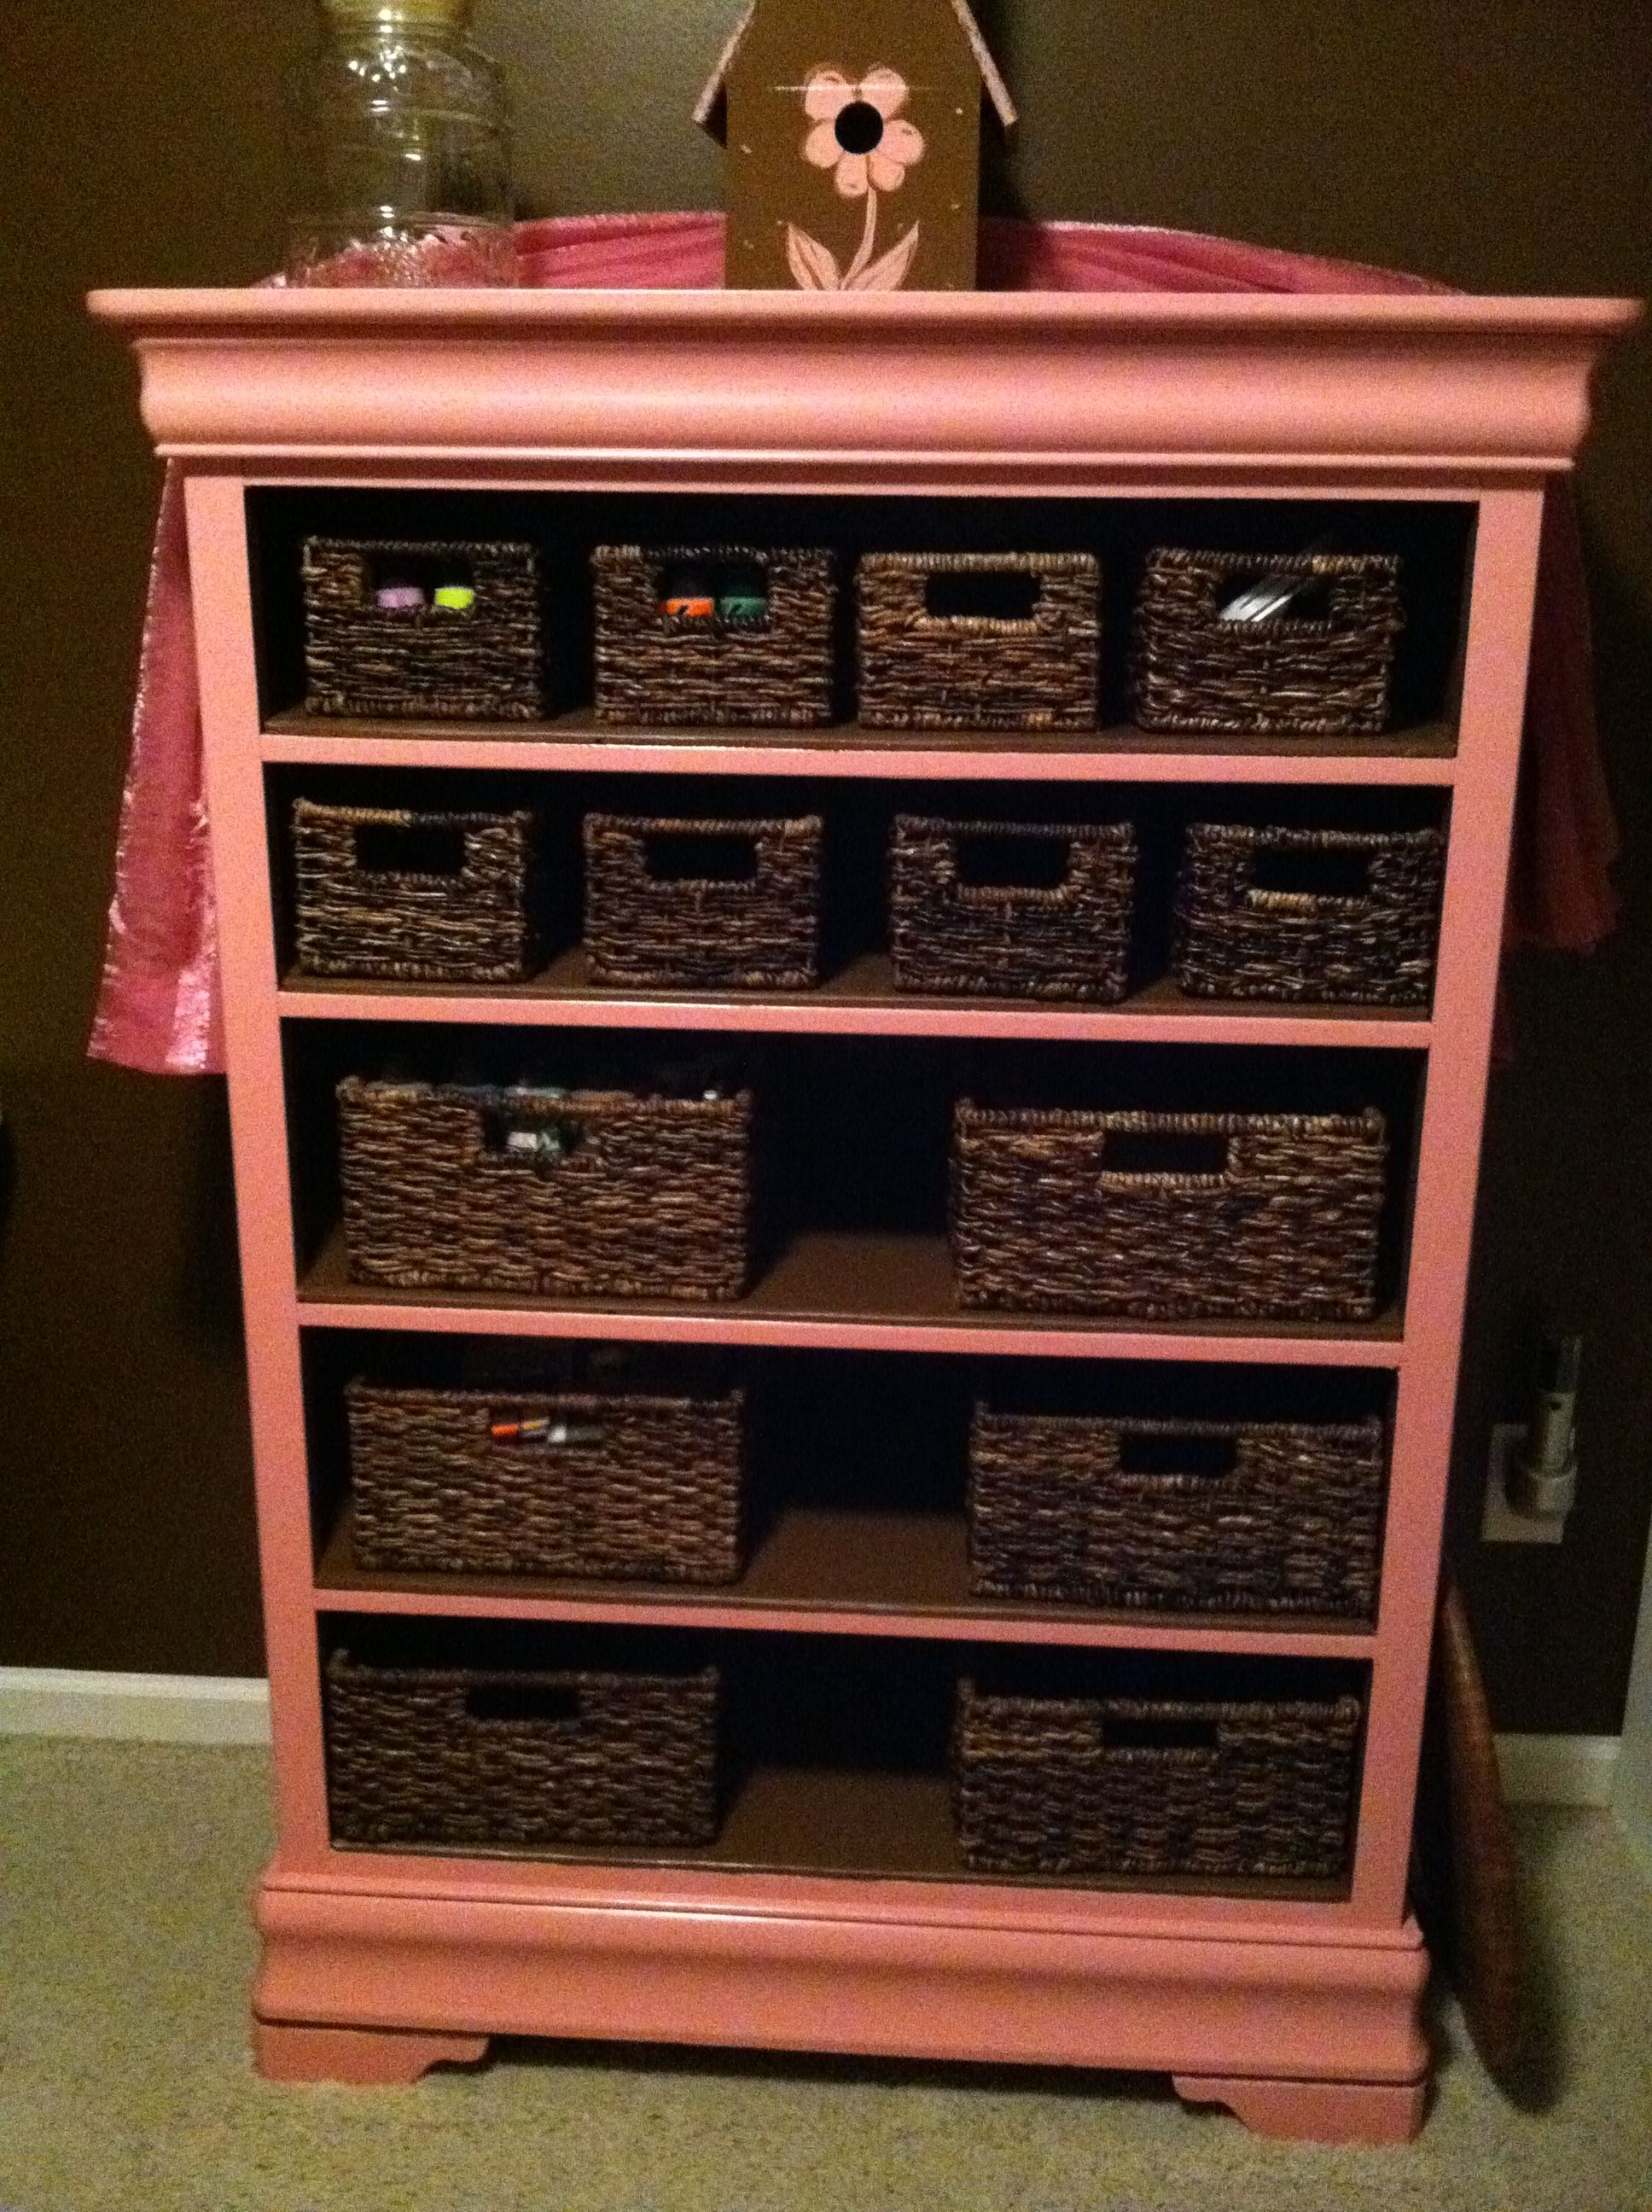 Pin By Dalia Jauregui On My Completed Projects Wicker Bedroom Furniture White Wicker Furniture Repurposed Furniture [ 2592 x 1936 Pixel ]